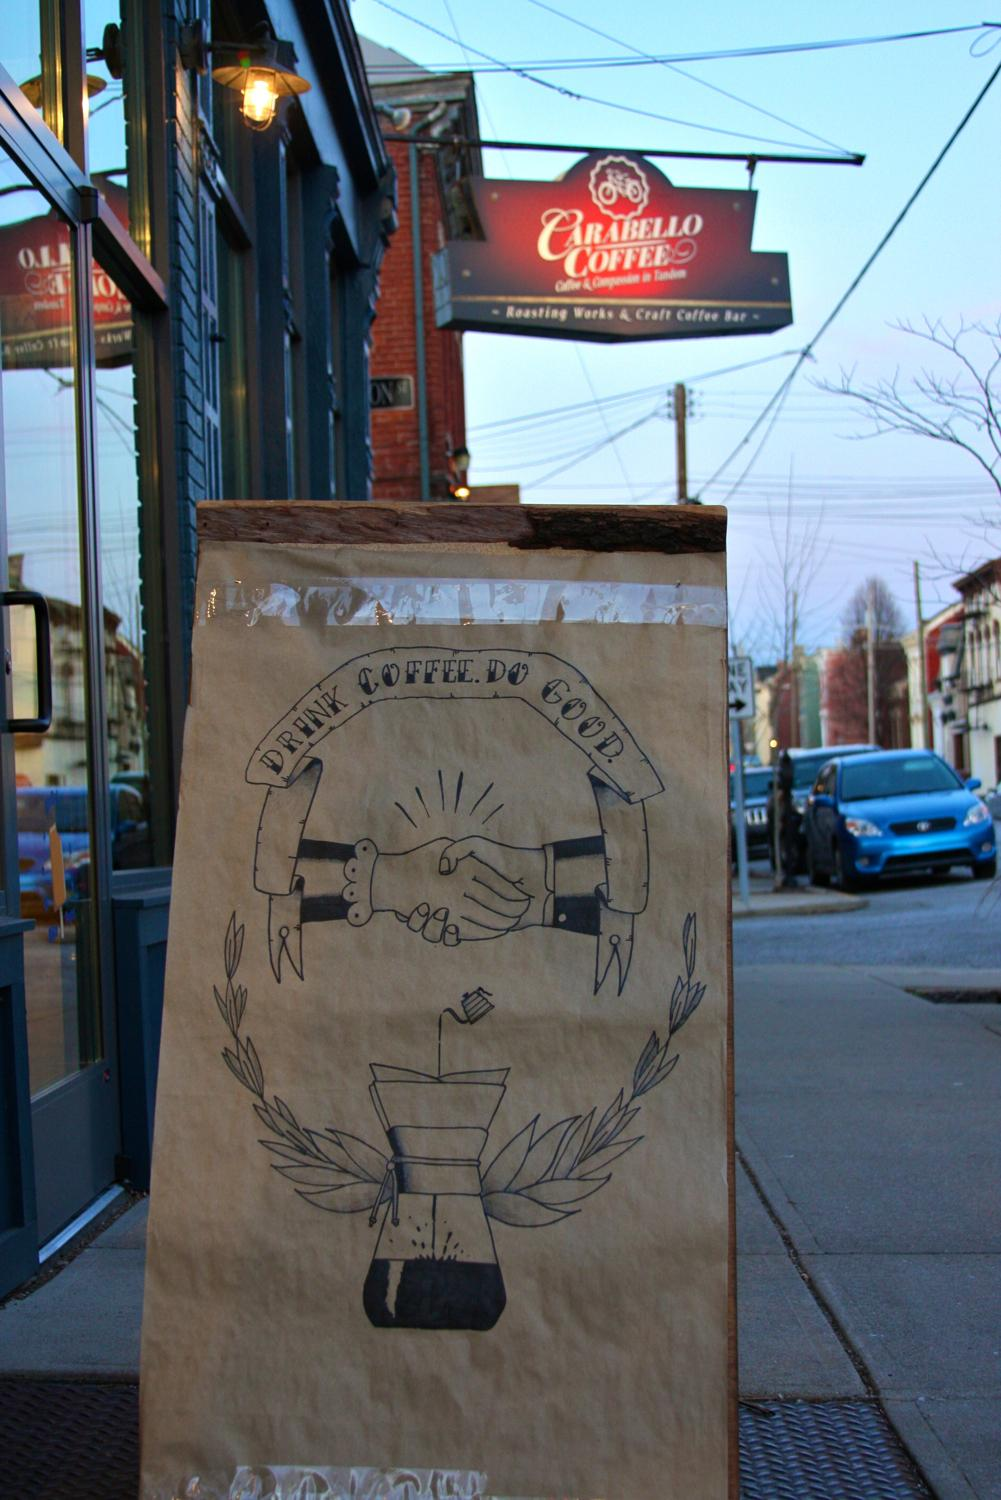 Carabello Analog Bar provides a deeper look at the coffee-making experience. With only six seats at the bar, baristas use their creativity to create unique drinks right in front of patrons. It bills itself as an experience unlike any other in Cincinnati. ADDRESS: 107 E. 9th St., Newport, KY 41071 / IMAGE: Molly Paz // PUBLISHED: 3.4.17